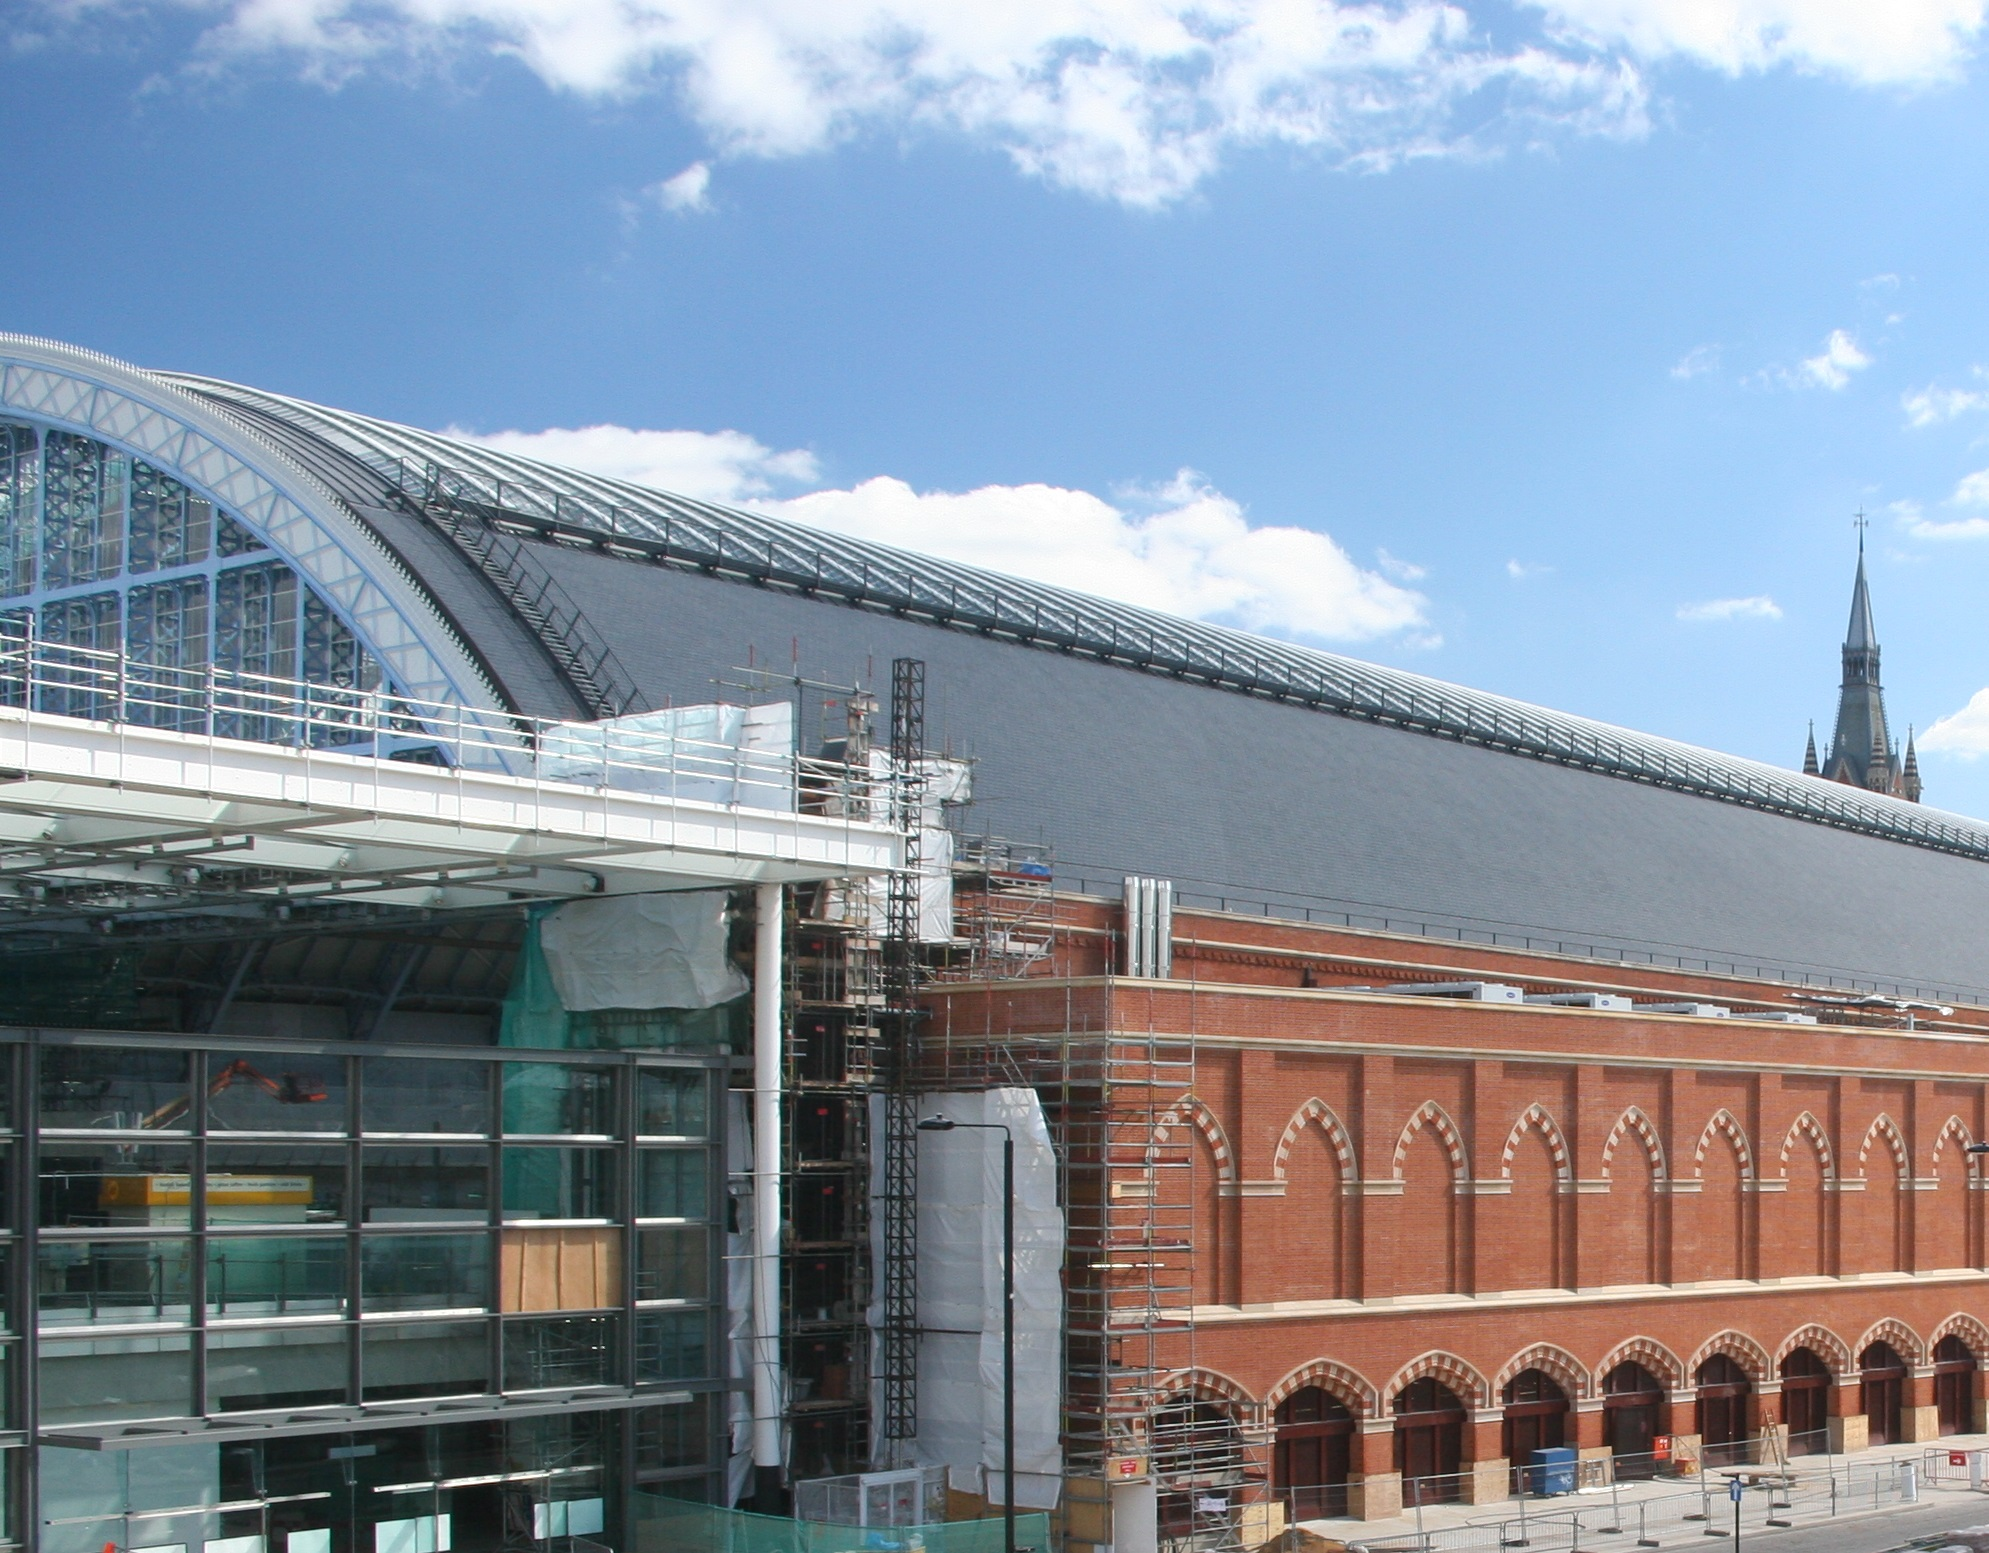 st pancras station brickwork